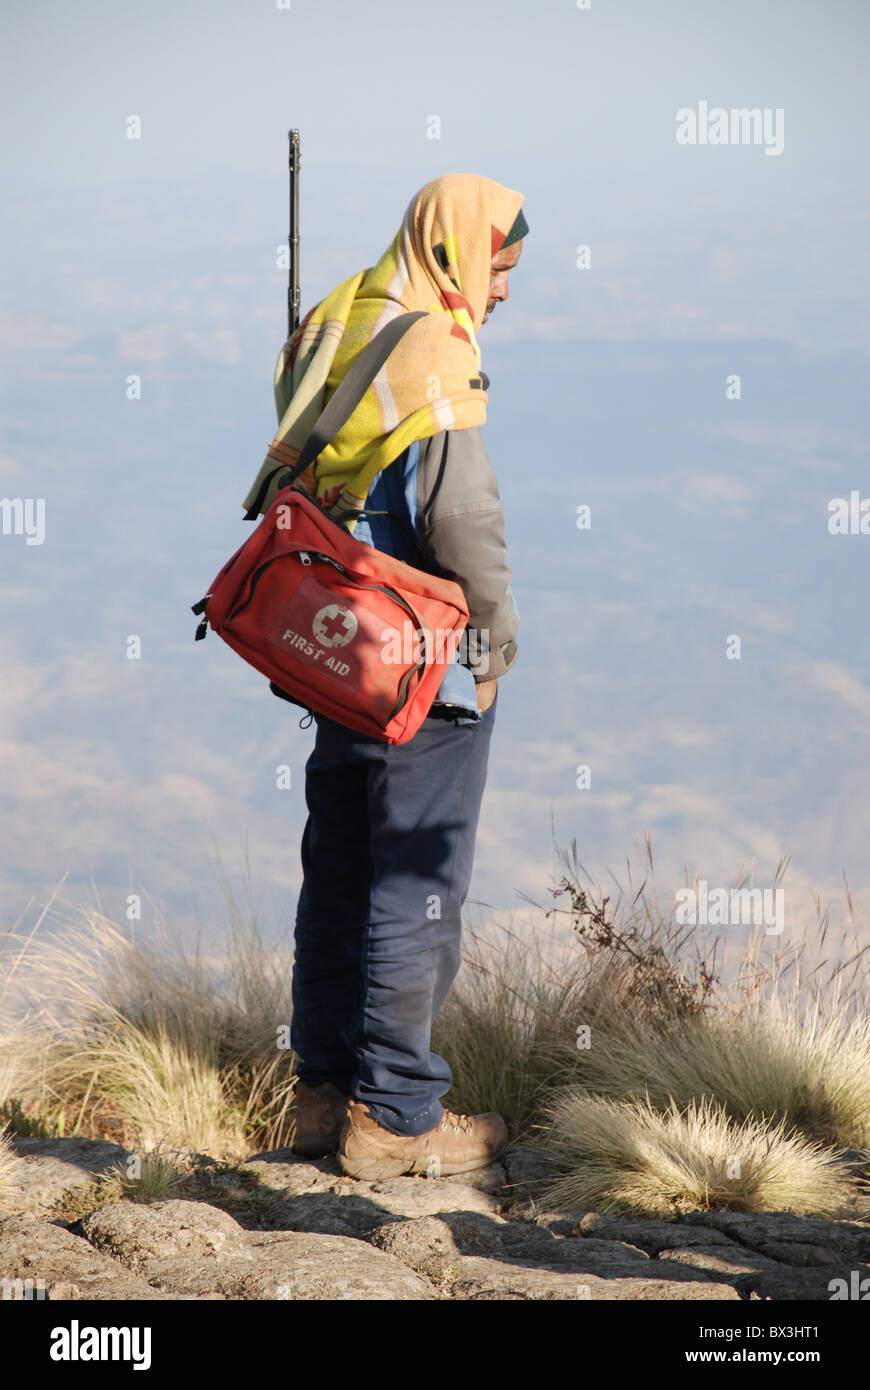 a scout from the Simien mountain park service in Ethiopia with a rifle and first aid bag - Stock Image